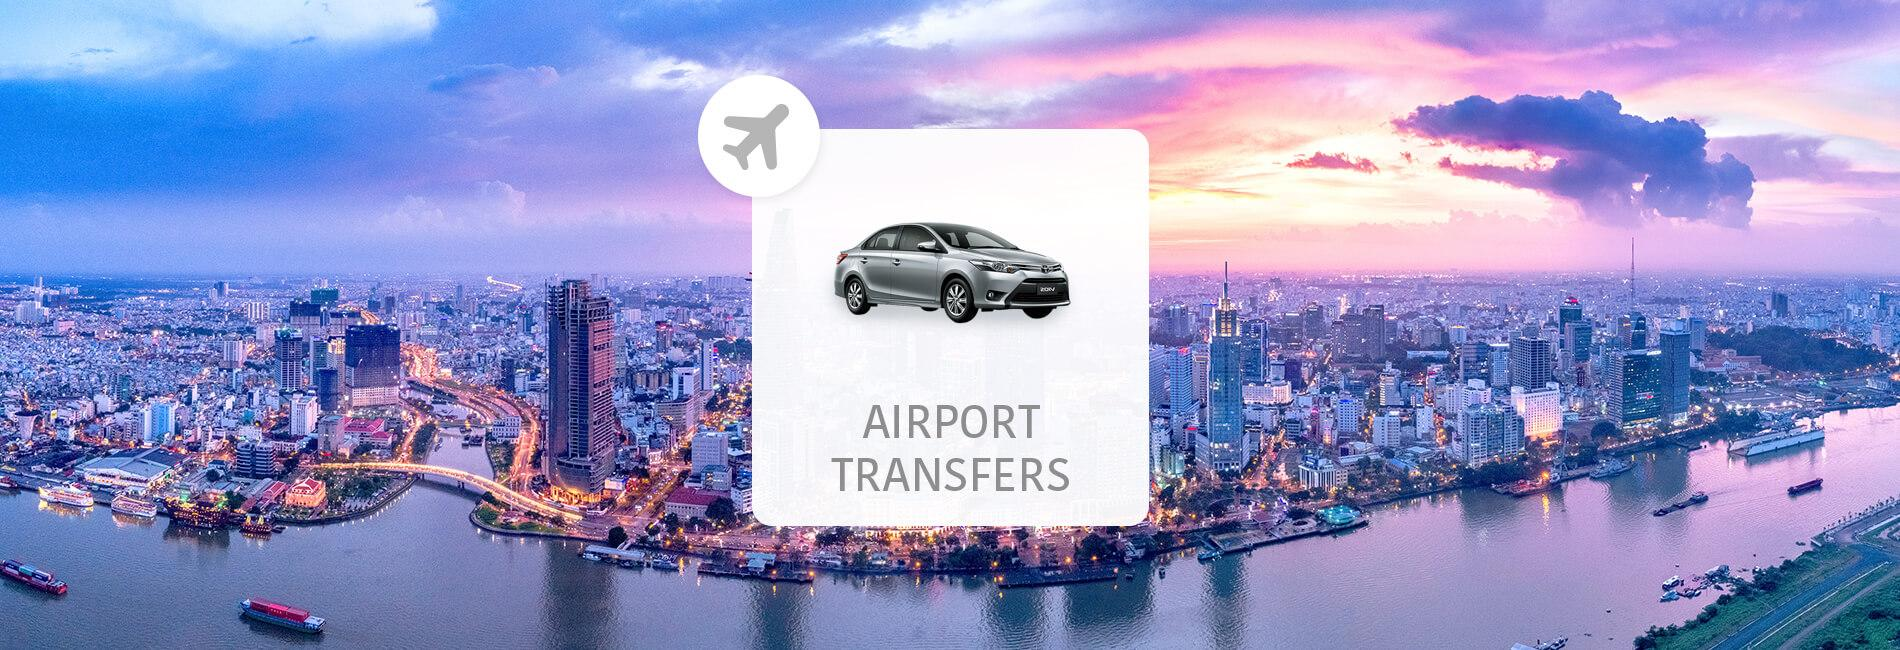 Tan Son Nhat International Airport (SGN) Private Transfer to Ho Chi Minh City